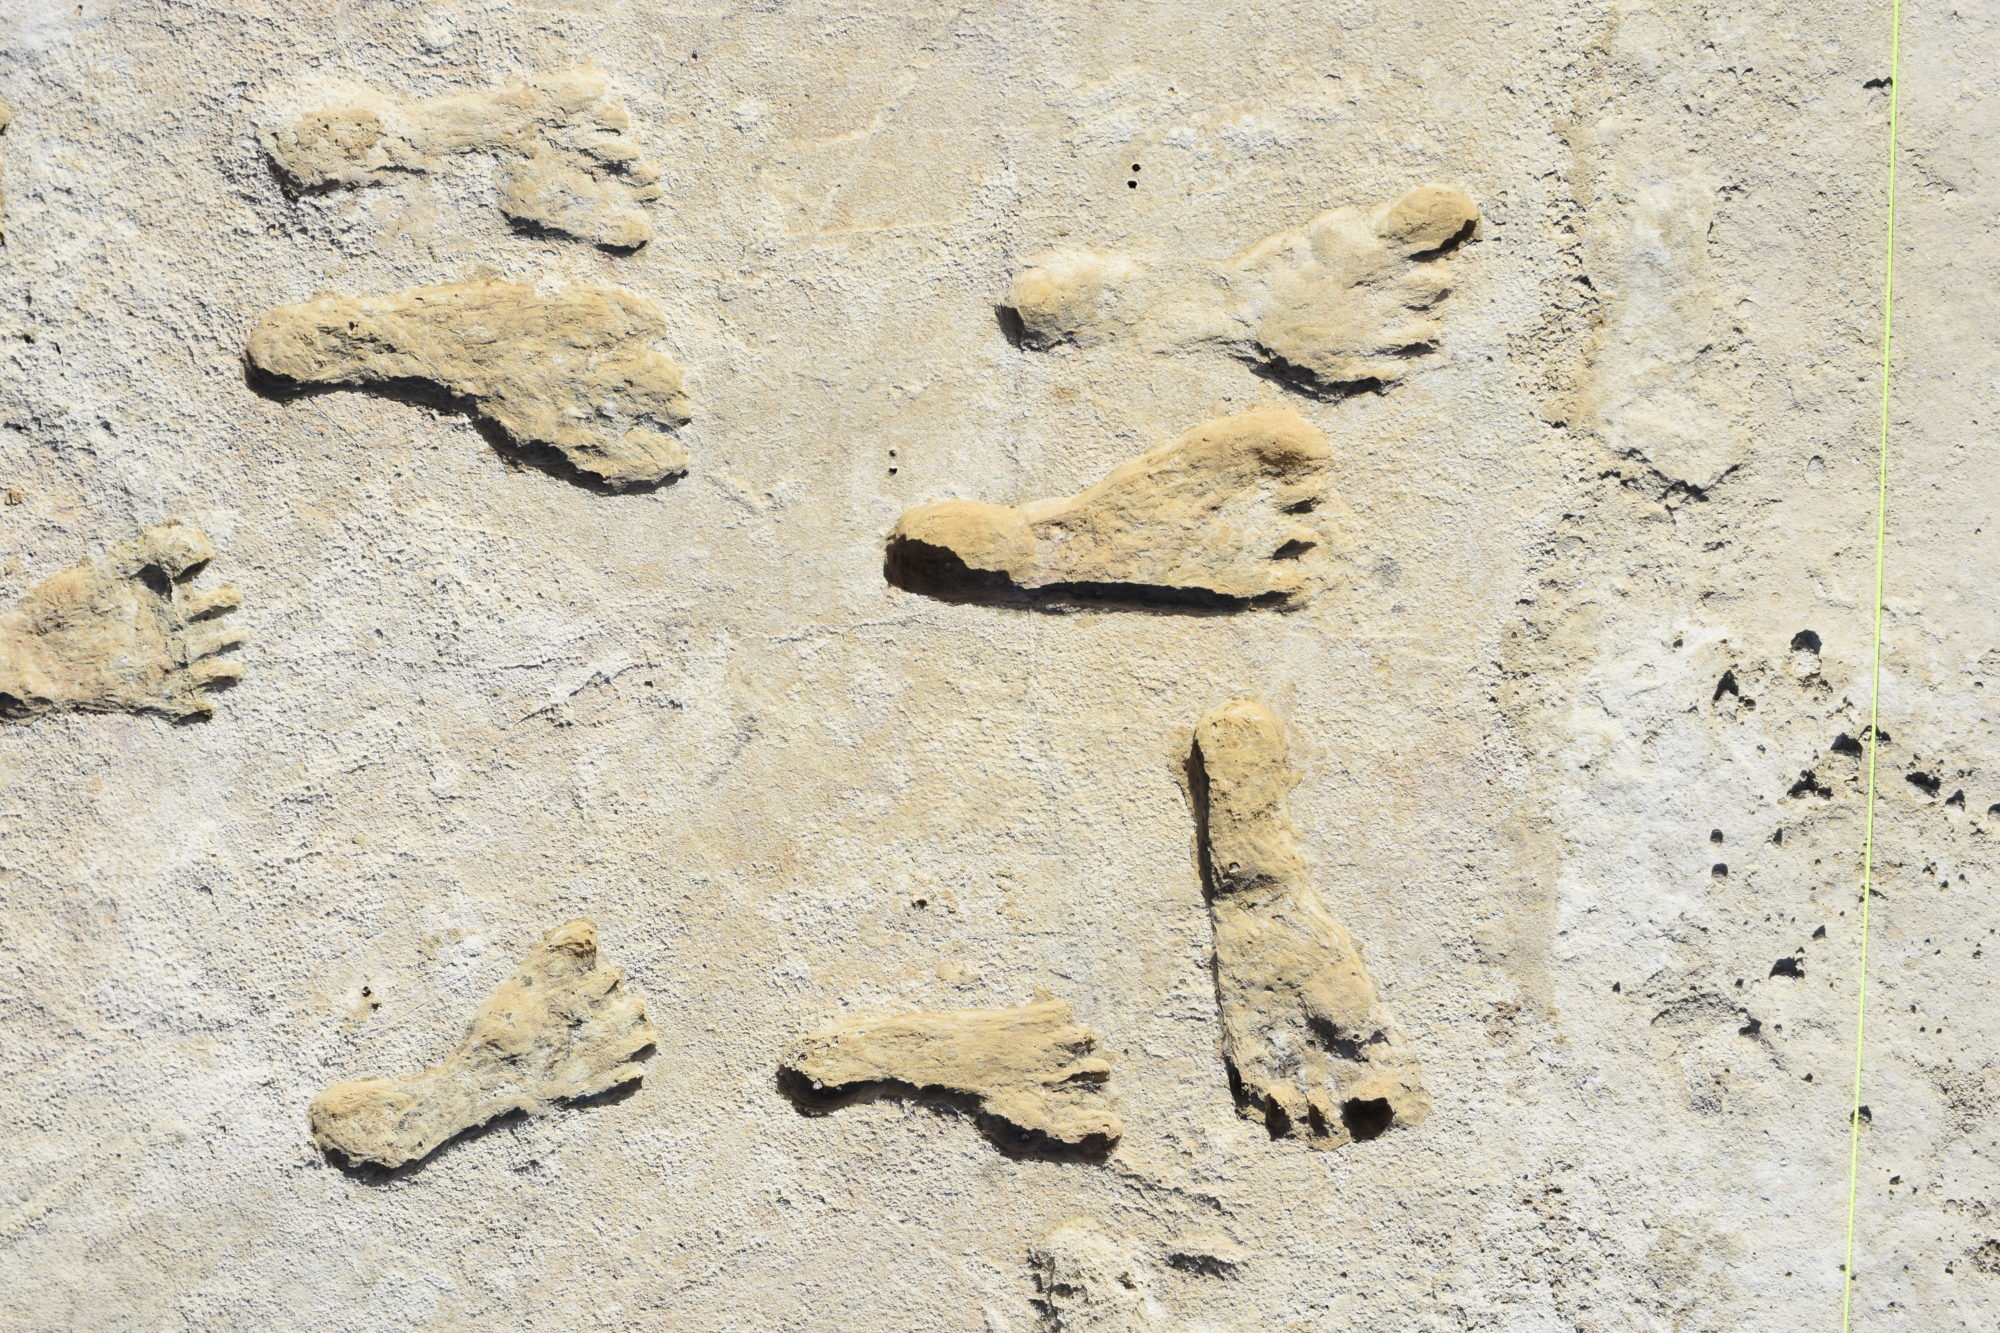 Footprint fossils recently discovered in White Sands National Park